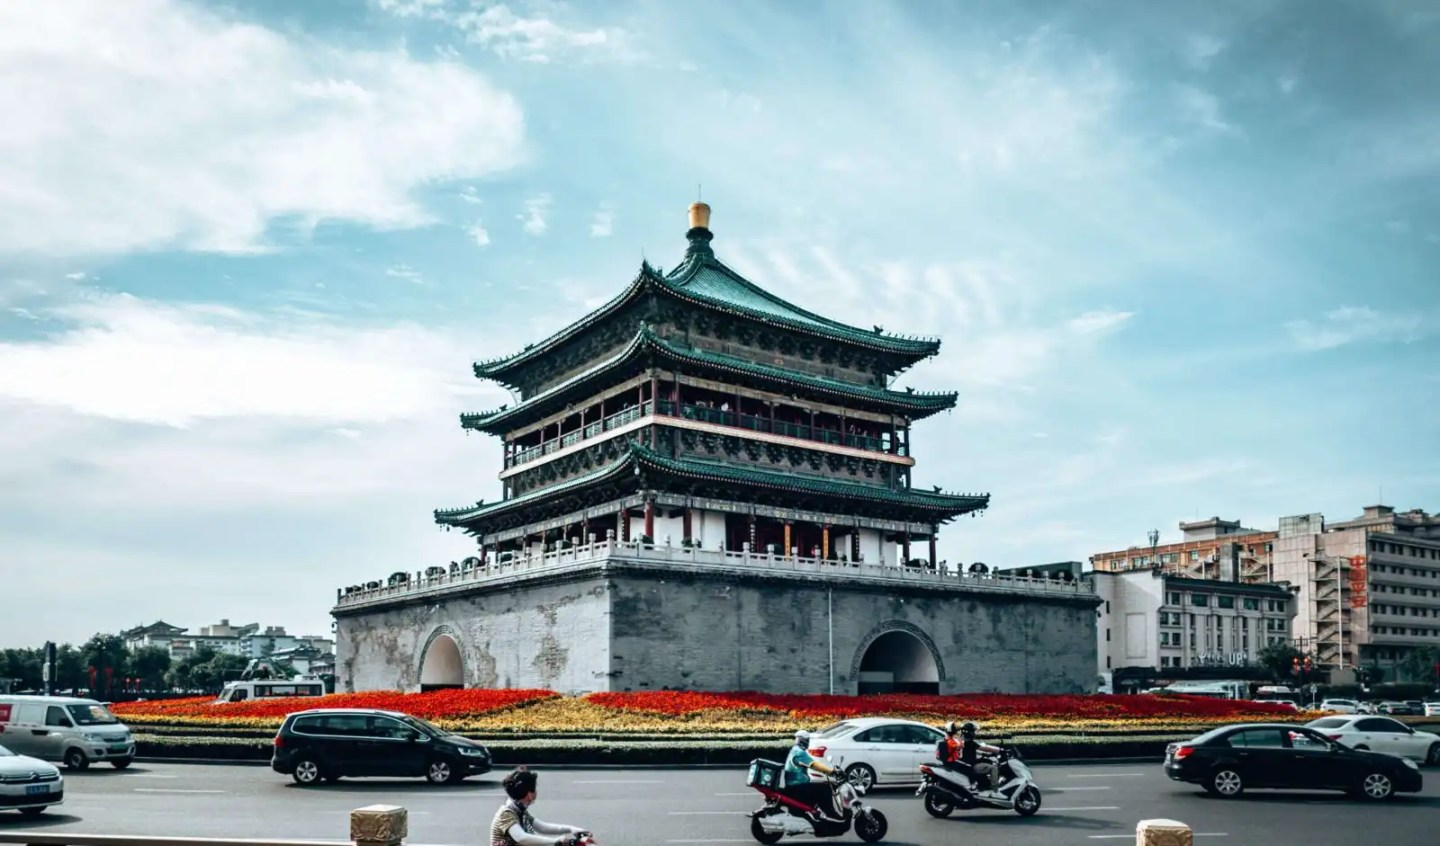 Image of the Bell Tower in Xian China